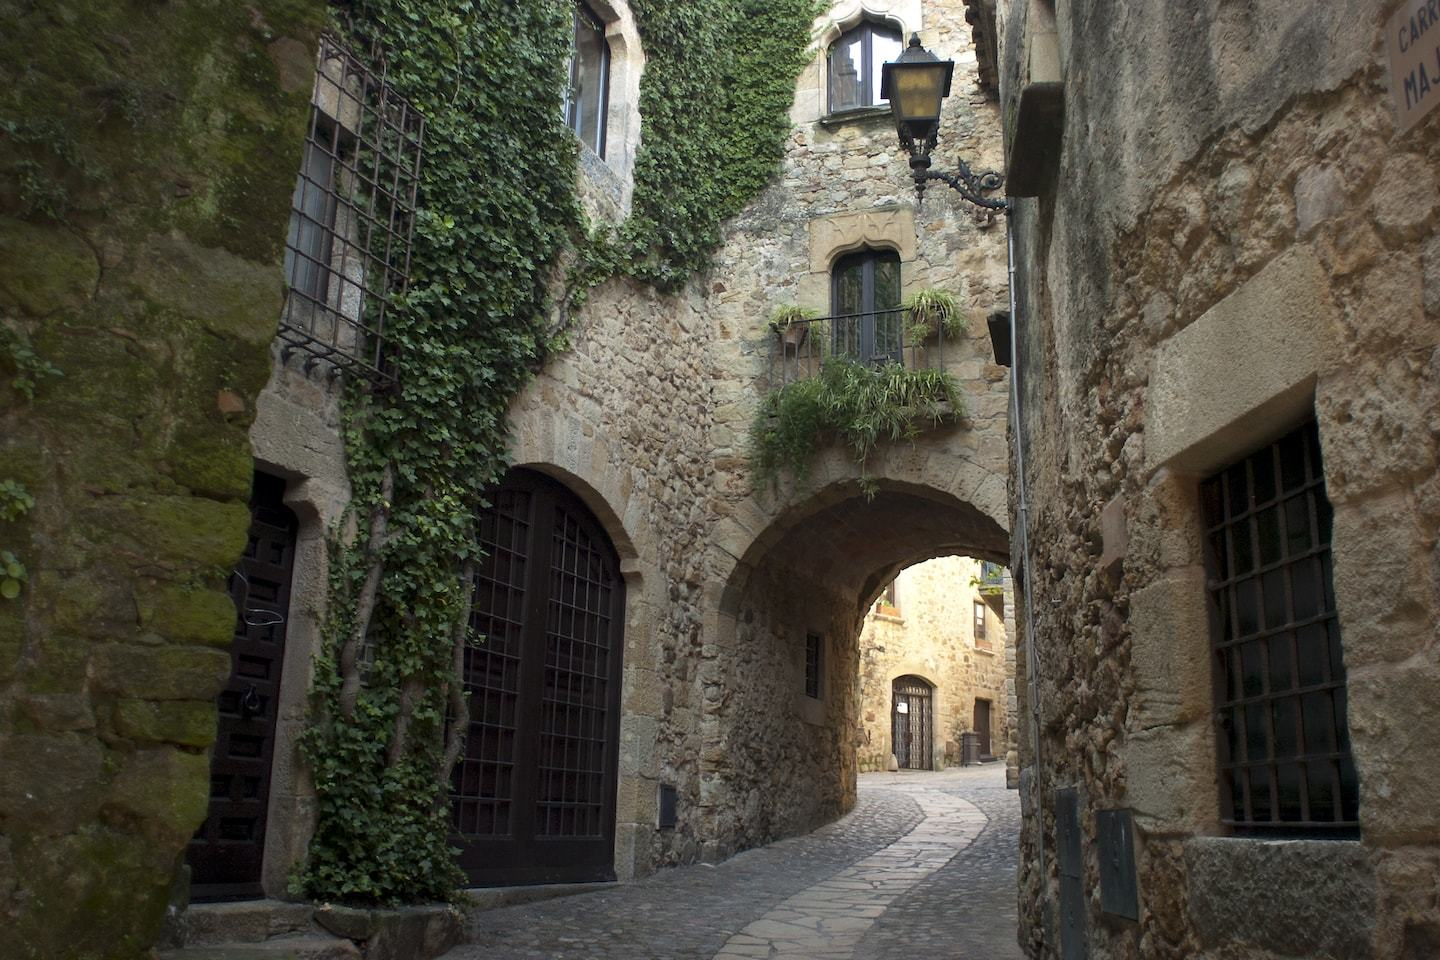 medieval stone buildings with archway and ivy